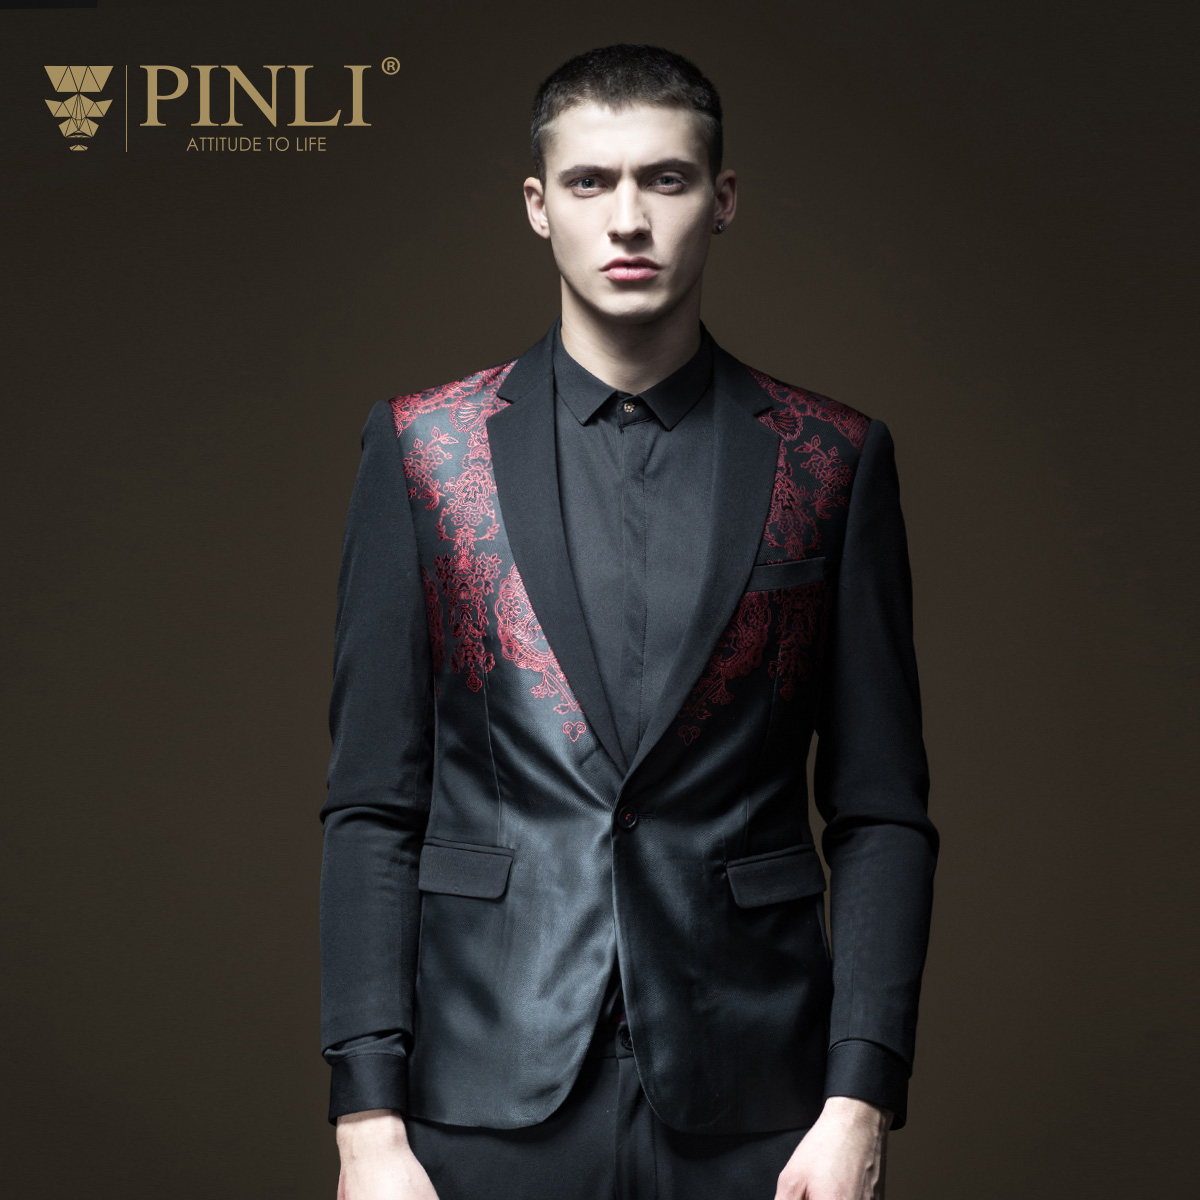 Blazer Masculino Hombre Mens Pinli Product Erect English Gentry Spring Men's Clothes And Western Dress Coats Coat B181106020